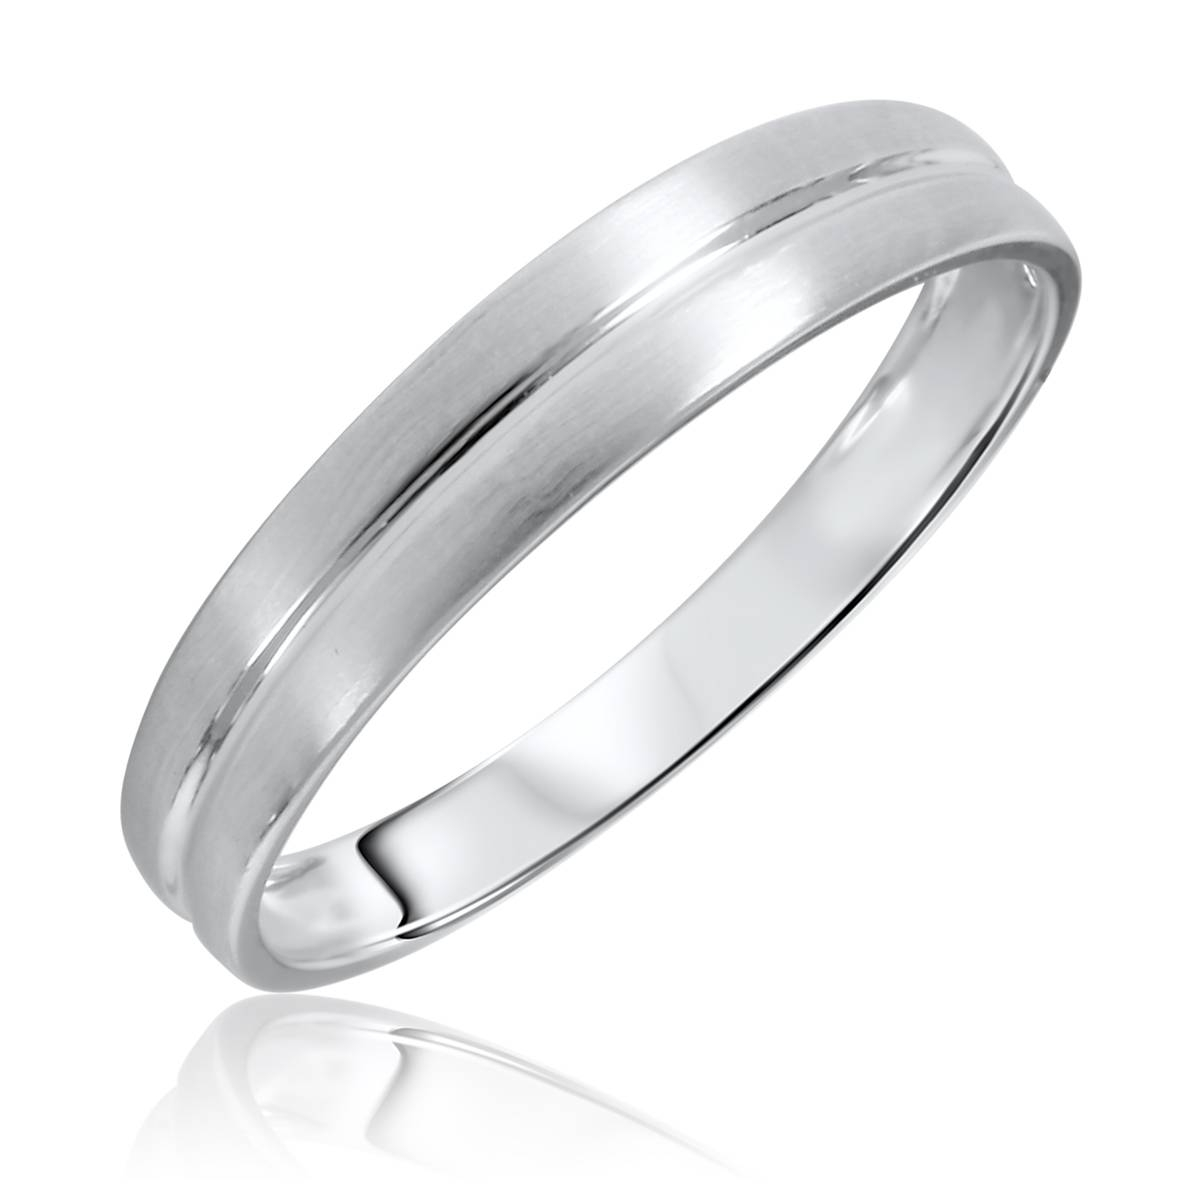 Mens Wedding Band 14K White Gold Intended For Mens White Gold Wedding Rings (Gallery 1 of 15)